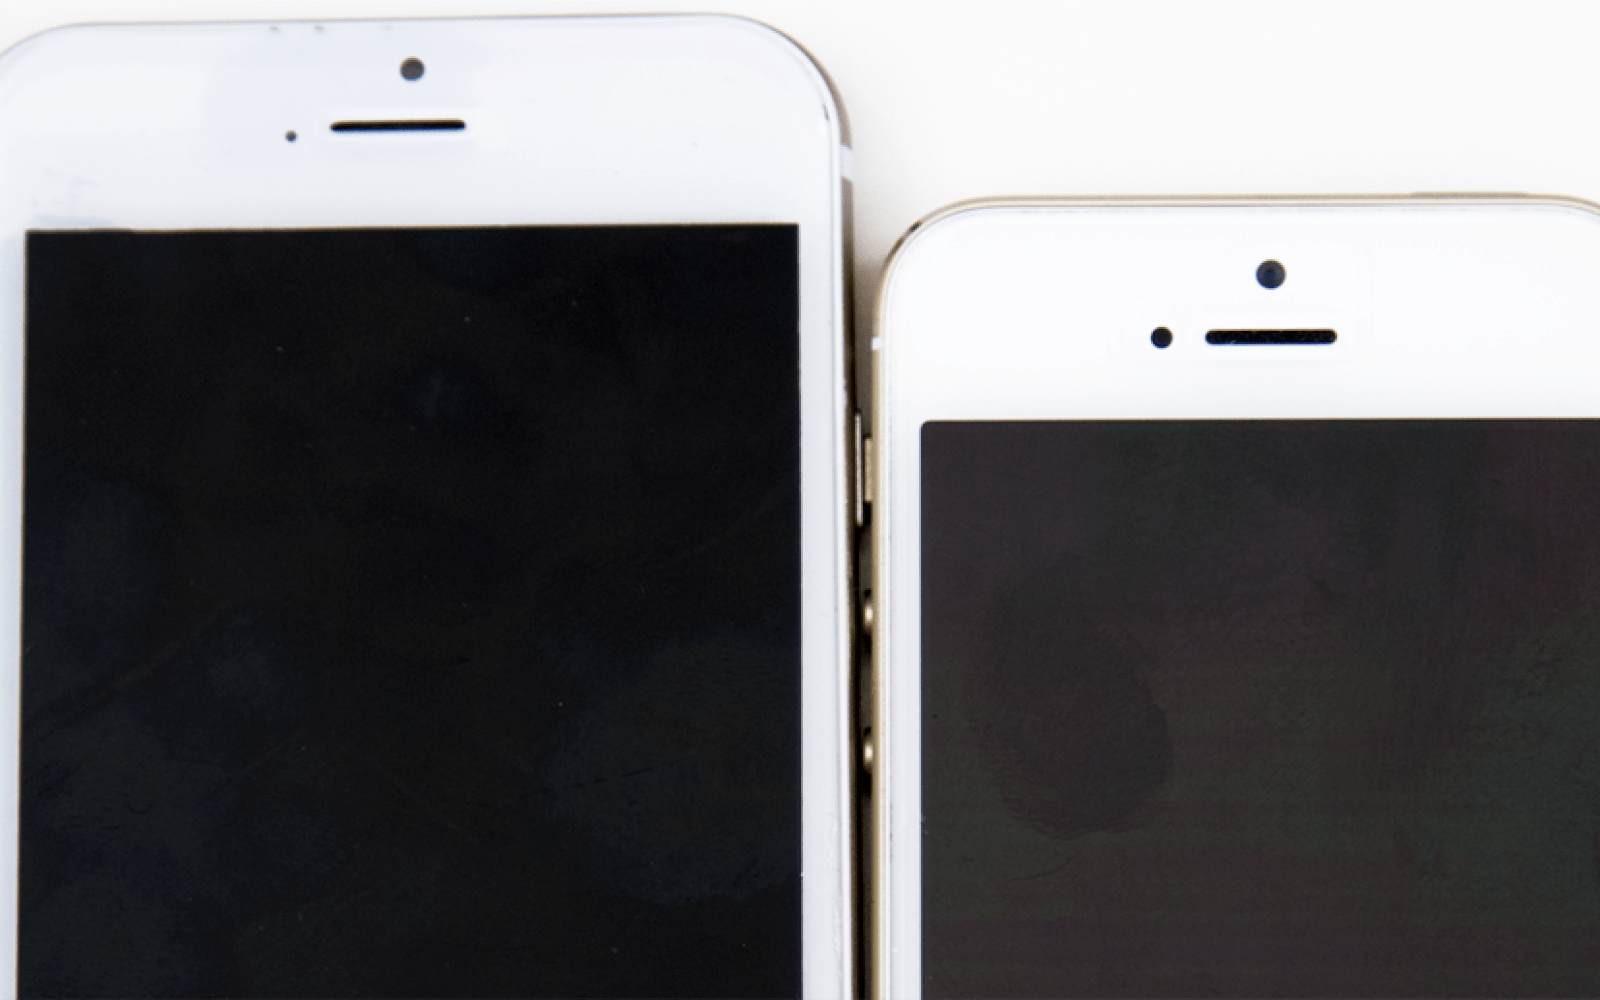 iPhone 6 production disrupted as Apple abandons thinner backlight approach, reports Reuters